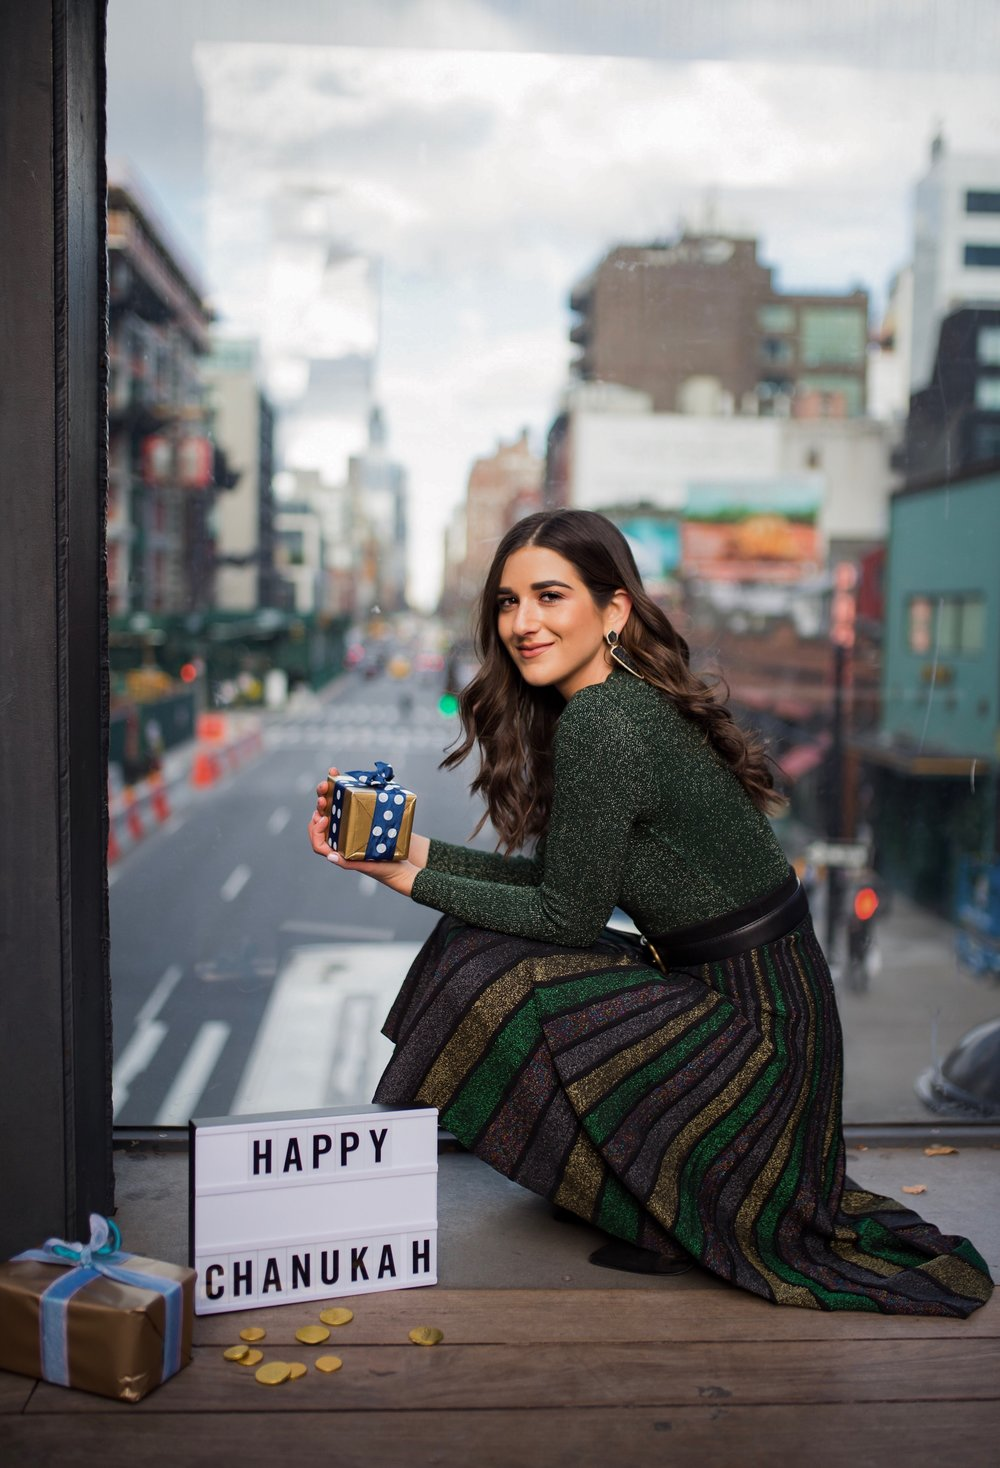 So You Wanna Talk About Diversity Don't forget me Esther Santer Fashion Blog NYC Street Style Blogger Outfit OOTD Trendy Shopping Miri Couture Laurel Creative Sparkles Midi Skirt Glitter Holiday Jewish Chanukah 2018 Green Glitter Top Long Sleeve Shirt.jpg